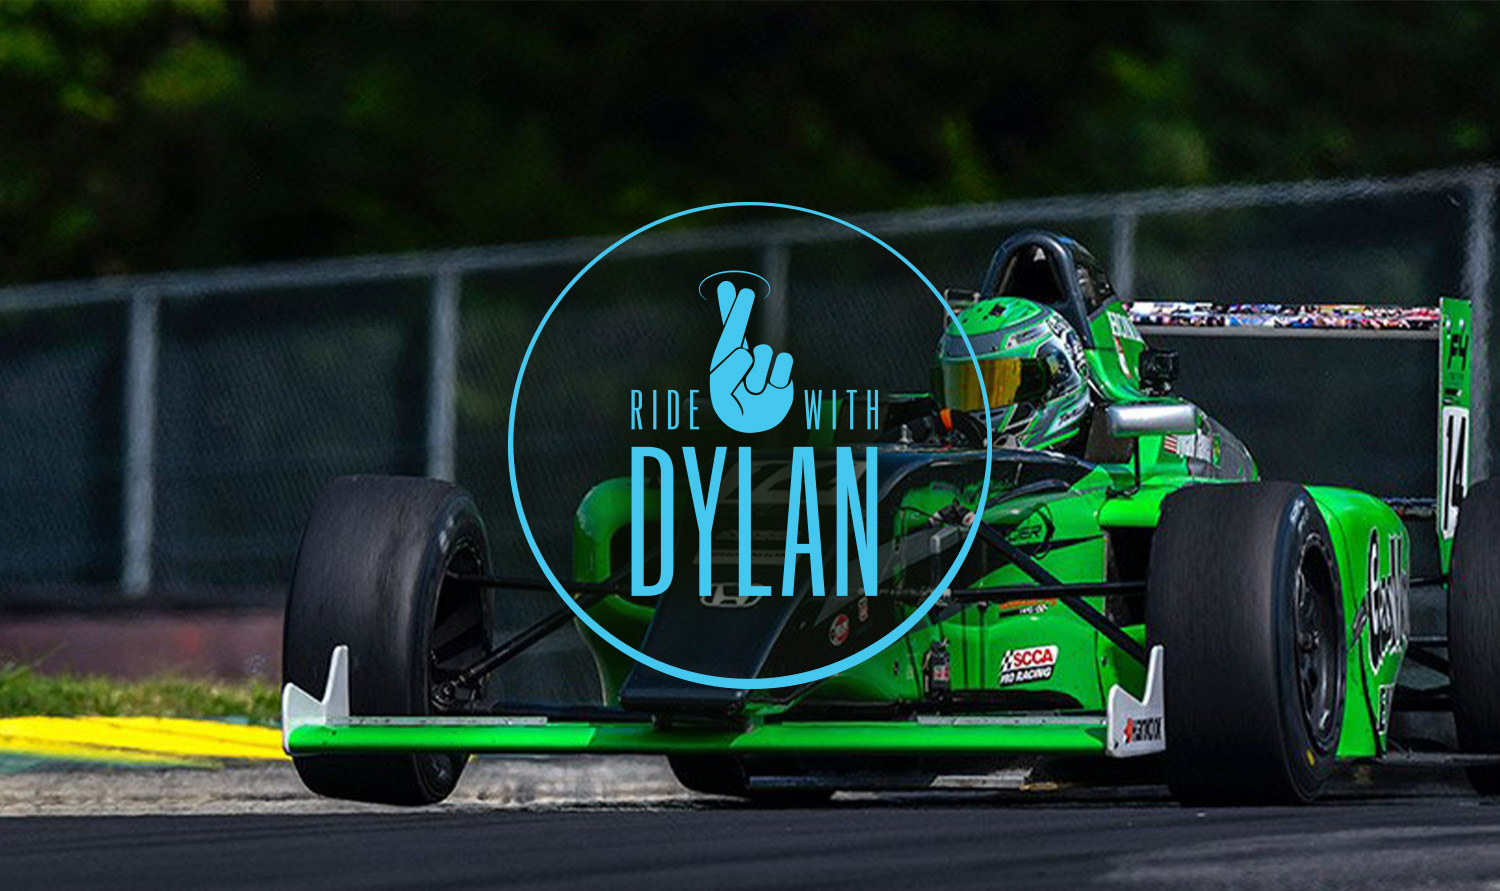 ride-with-dylan-featured-image